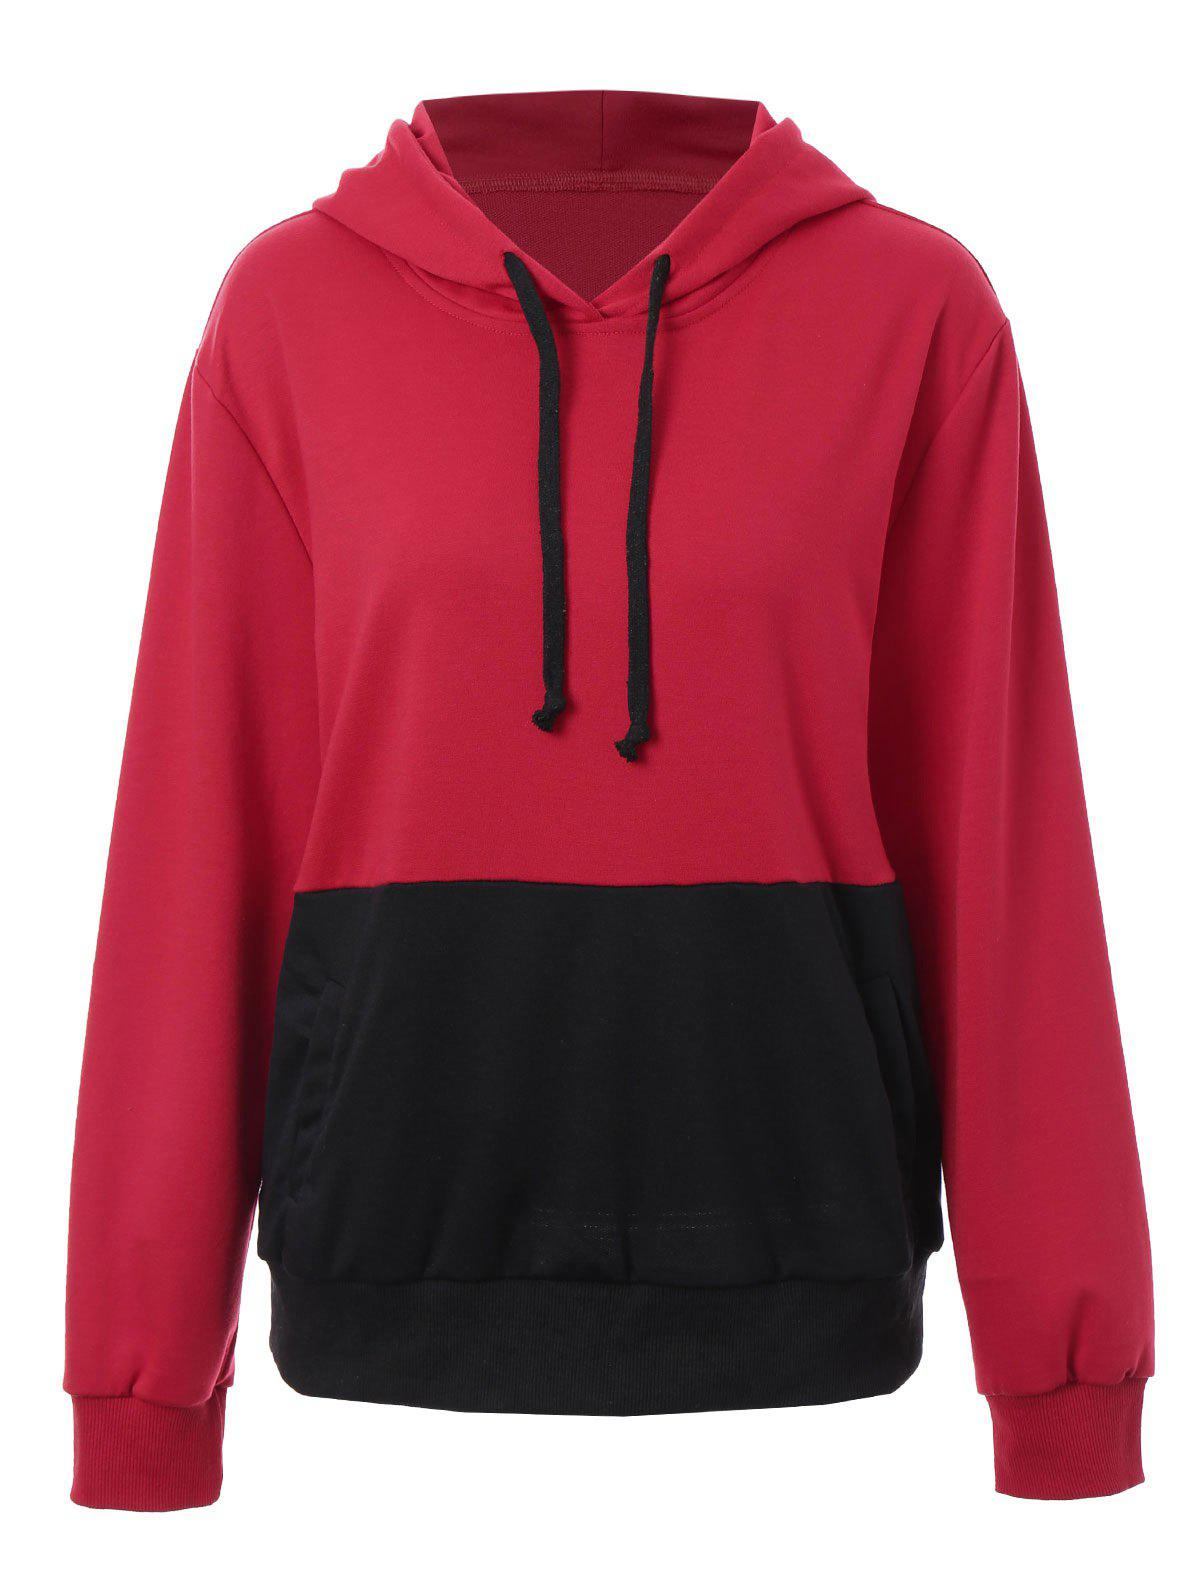 Plus Size Kangaroo Pocket Color Block HoodieWOMEN<br><br>Size: XL; Color: RED; Material: Polyester; Shirt Length: Regular; Sleeve Length: Full; Style: Fashion; Pattern Style: Others; Embellishment: Front Pocket; Season: Fall,Winter; Weight: 0.5800kg; Package Contents: 1 x Hoodie;